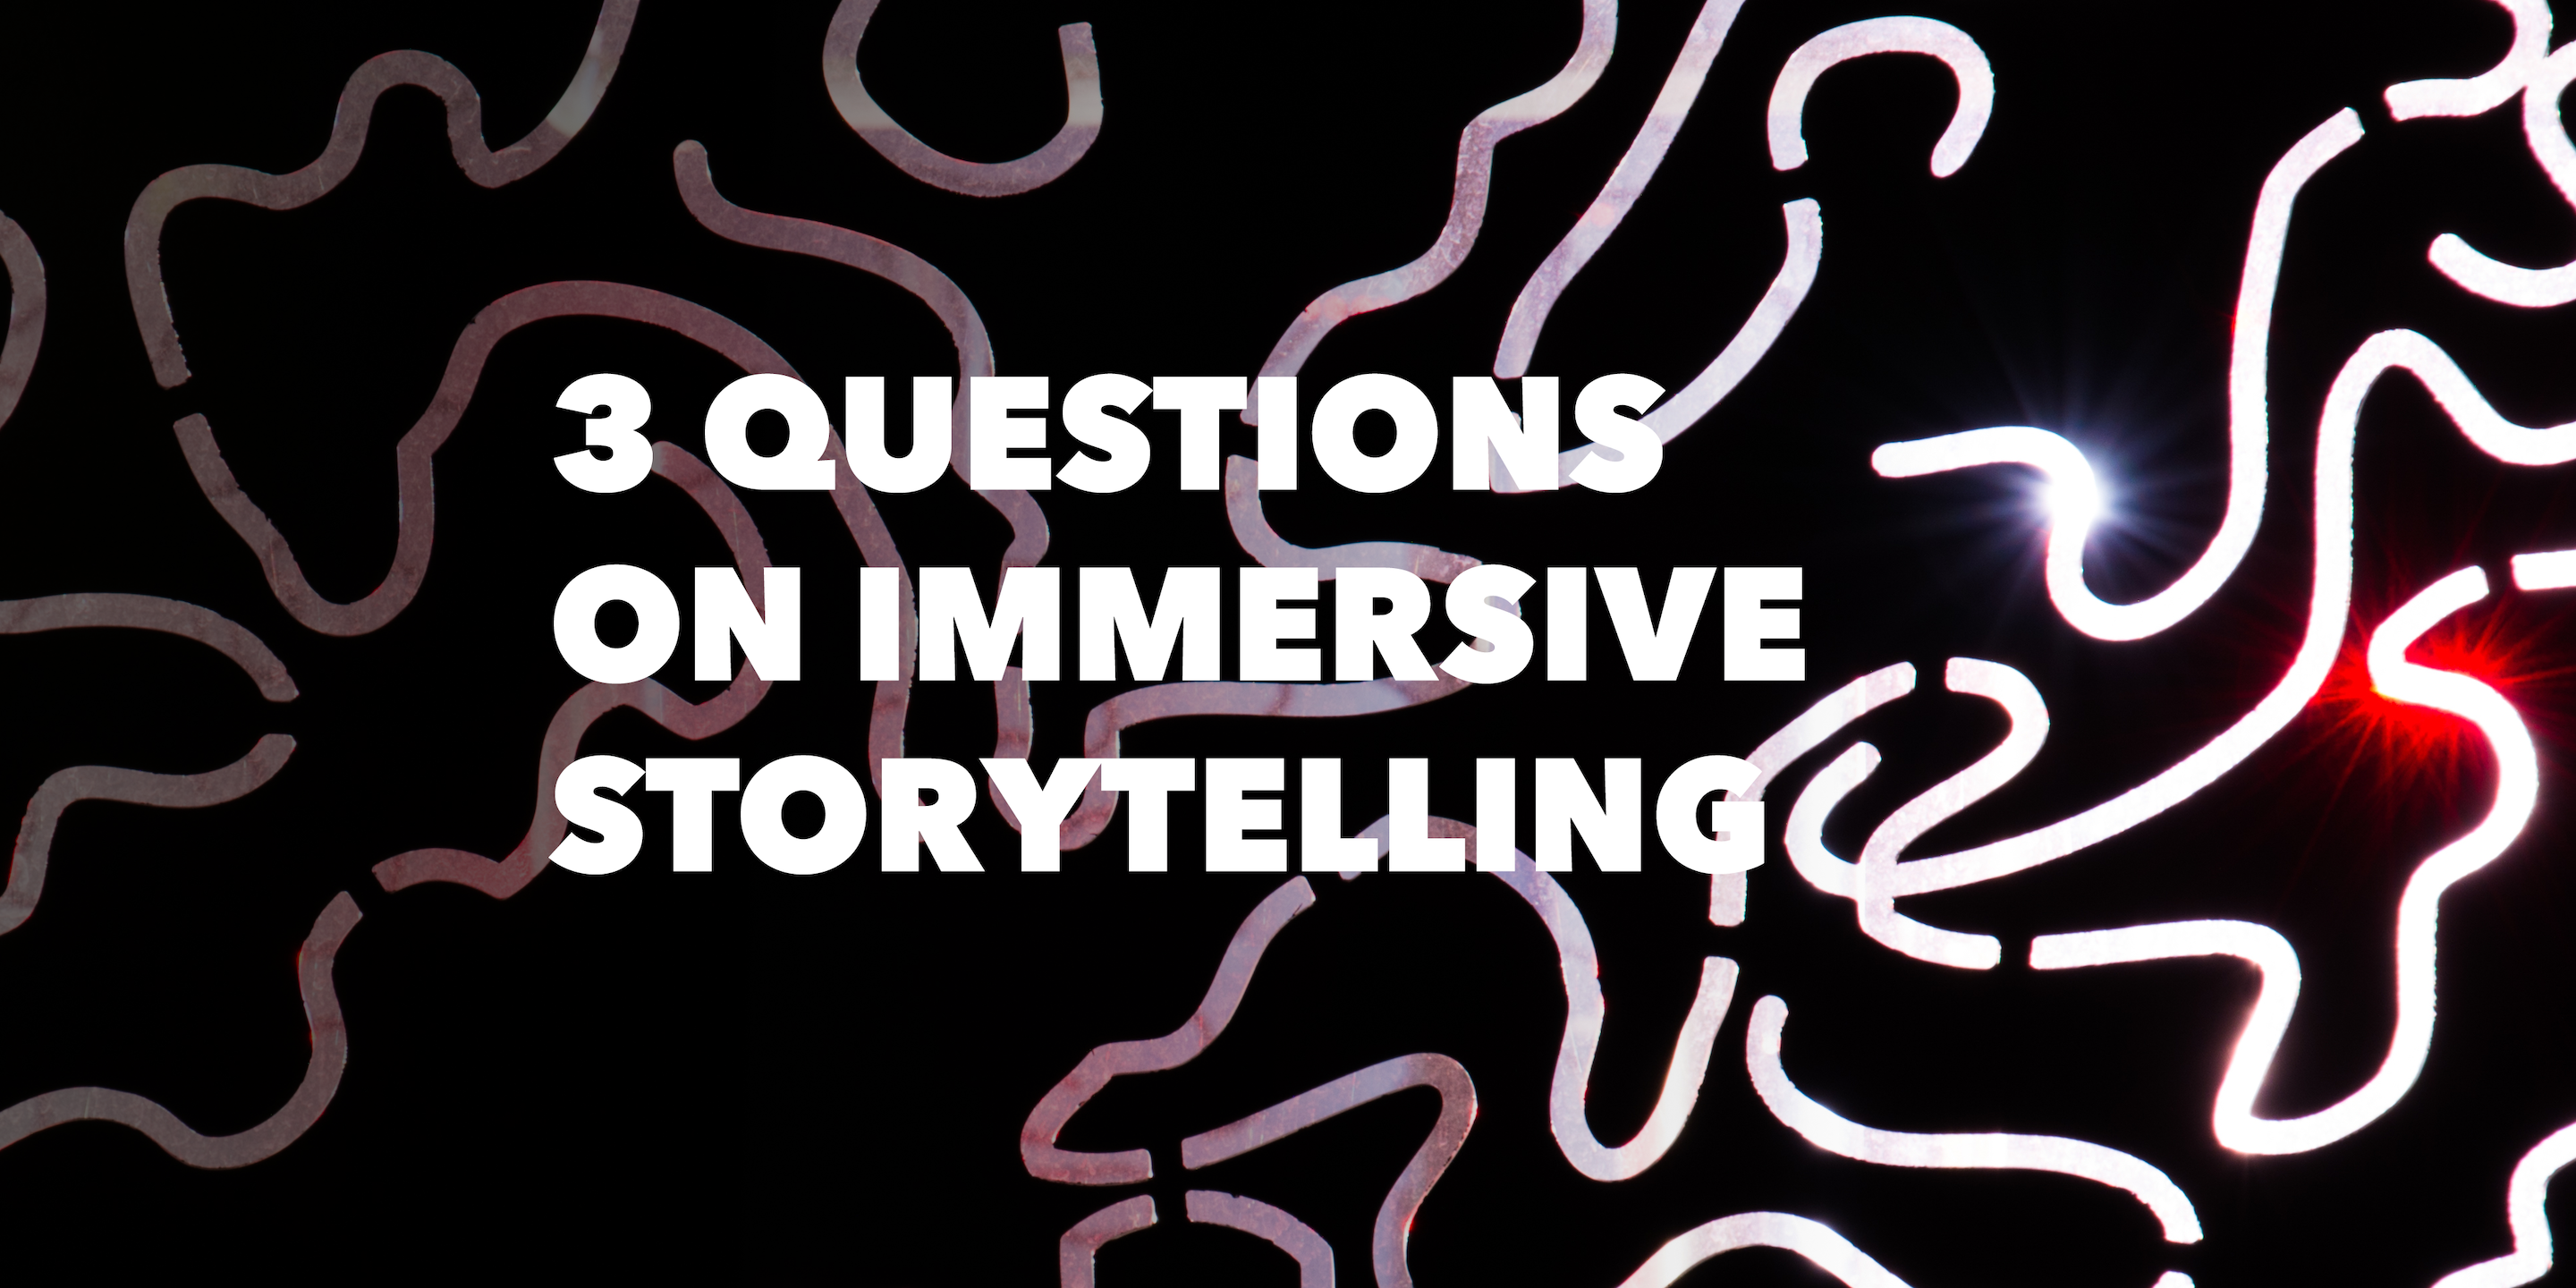 3 QUESTIONS ON IMMERSIVE STORYTELLING